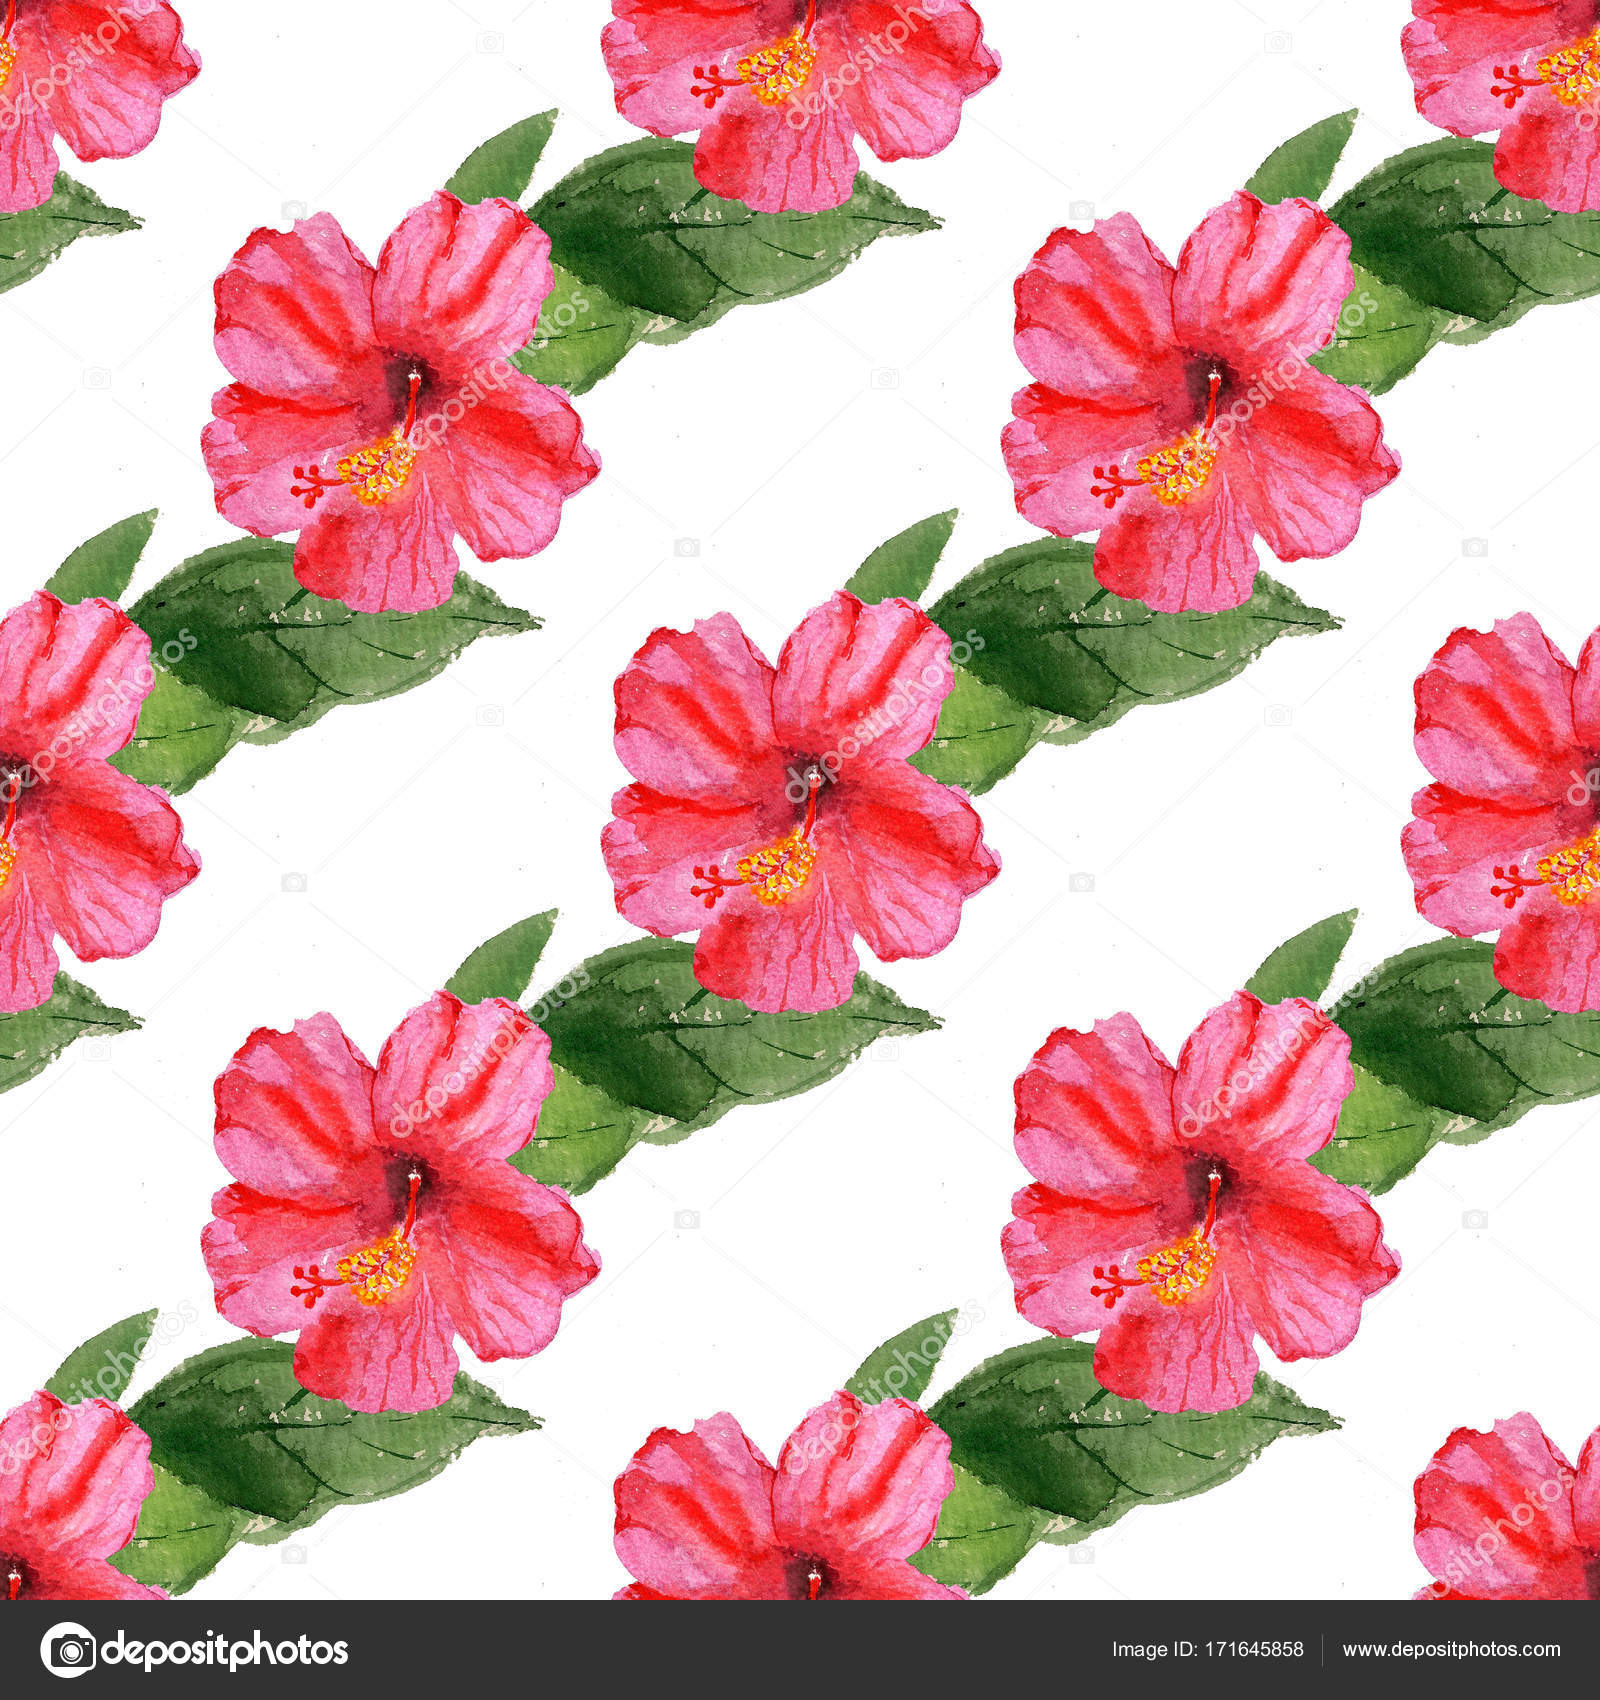 Seamless pattern with hibiscus flower stock photo shoshina seamless pattern with watercolor image of hibiscus flower good for textile fabric design wrapping paper and website wallpapers photo by shoshina izmirmasajfo